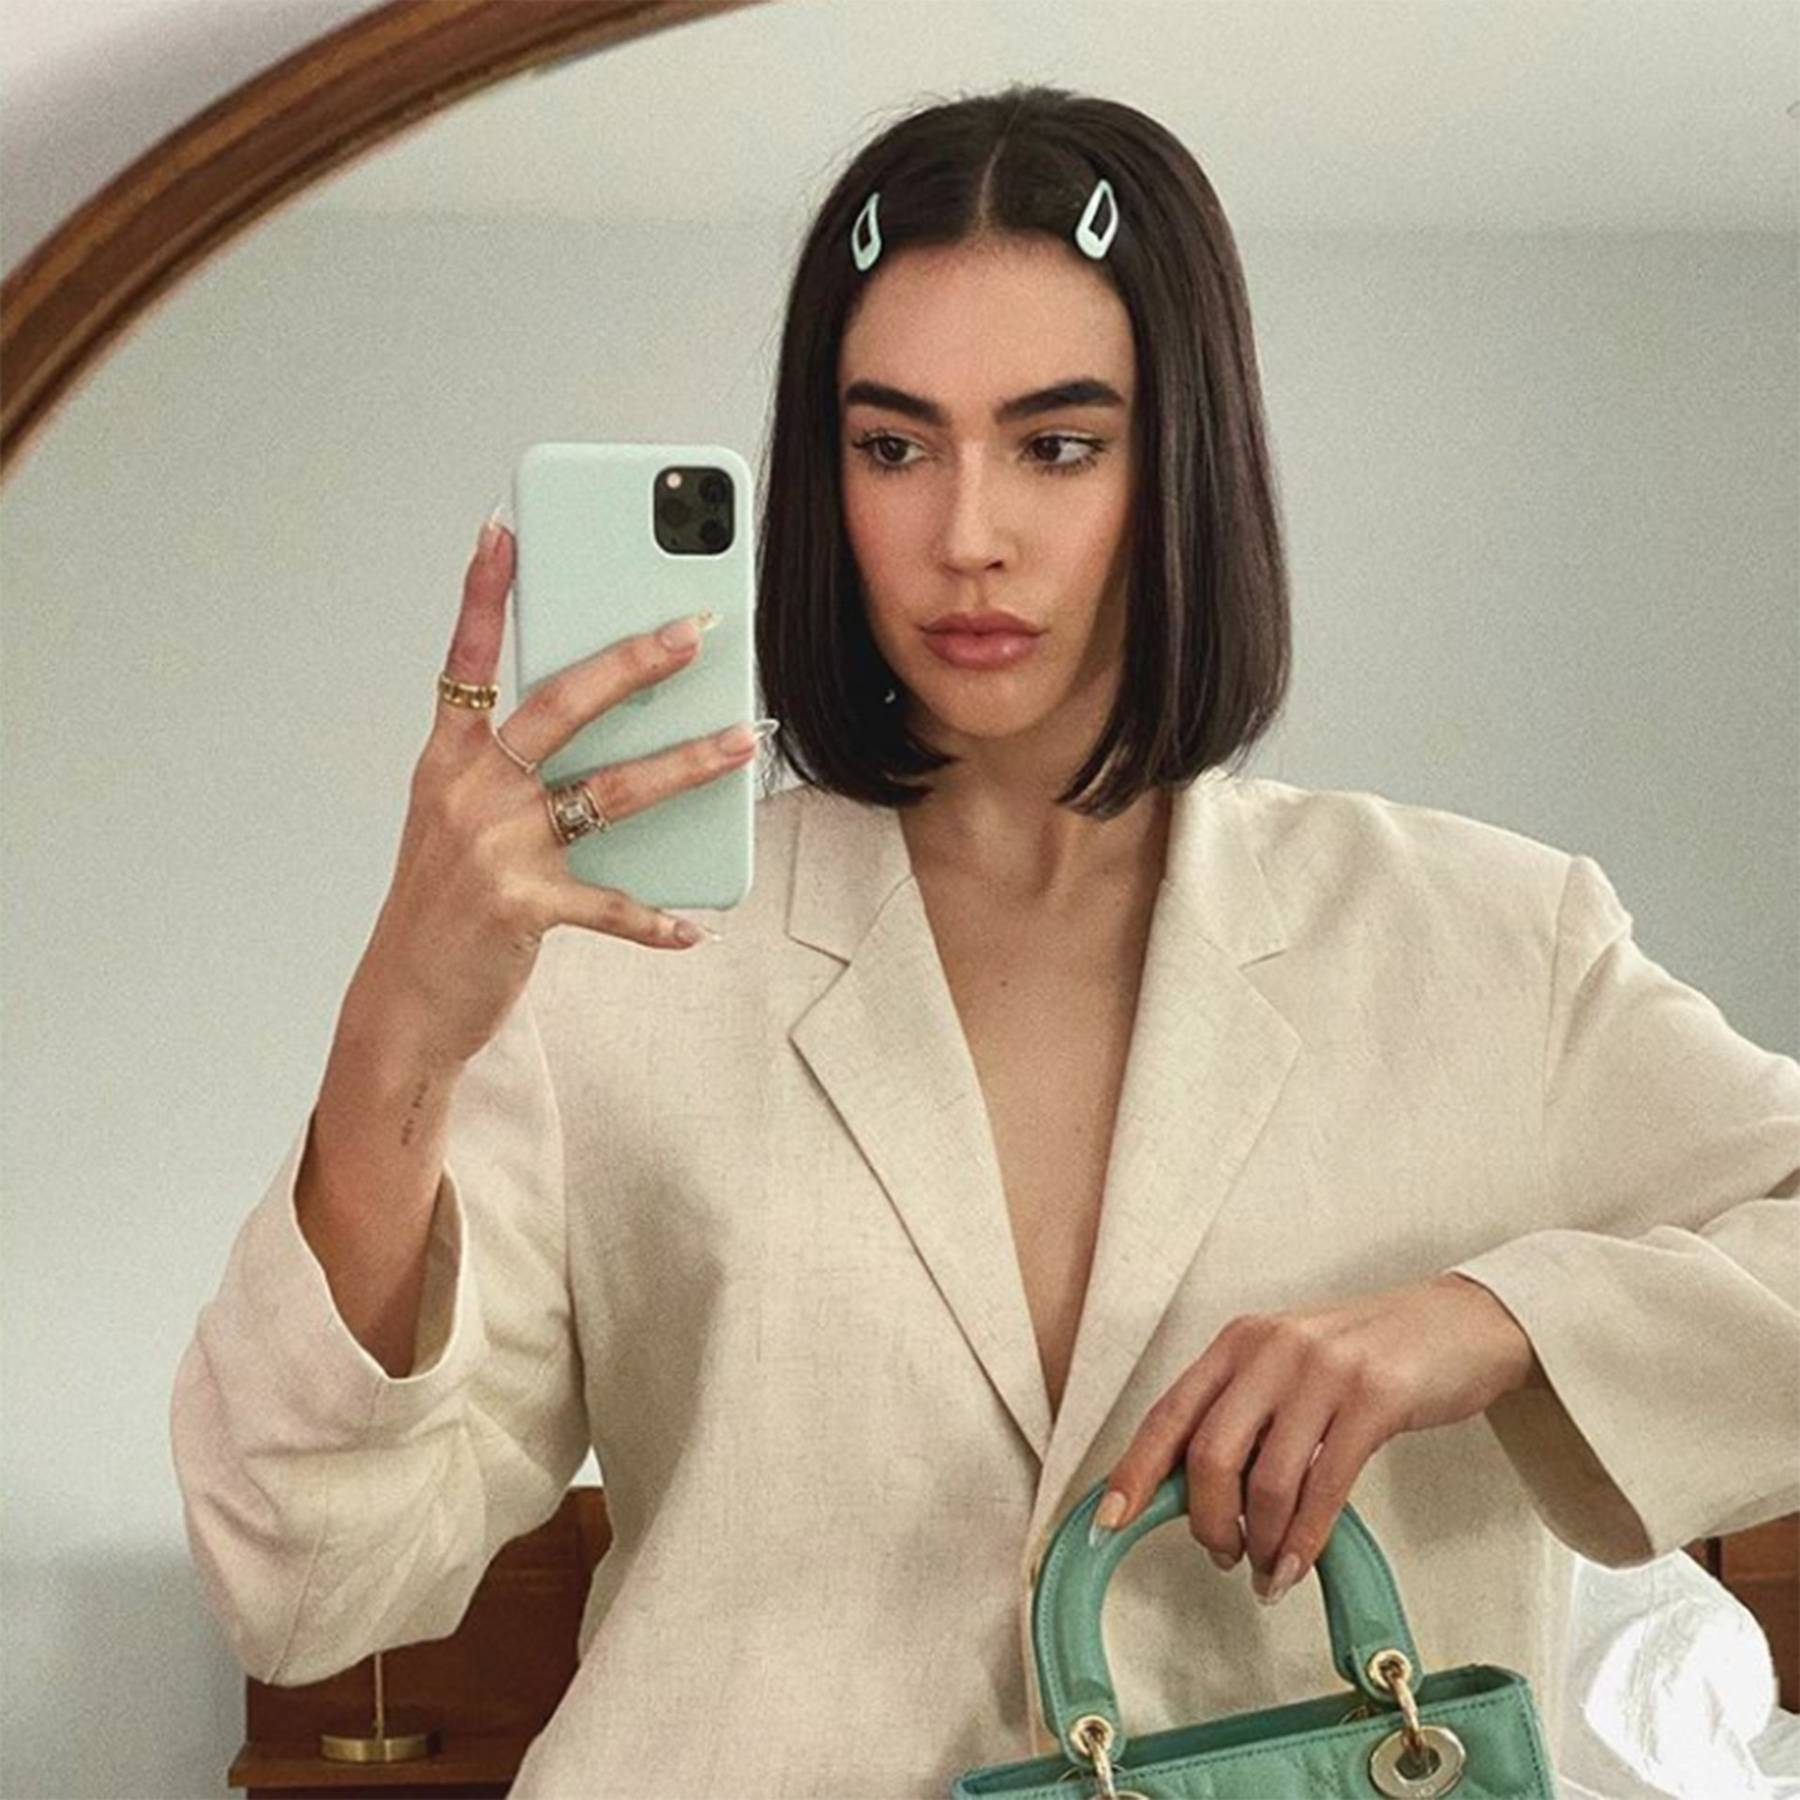 Hair Clip Fashion Trend The Hottest Accessory This Year Glamour Uk